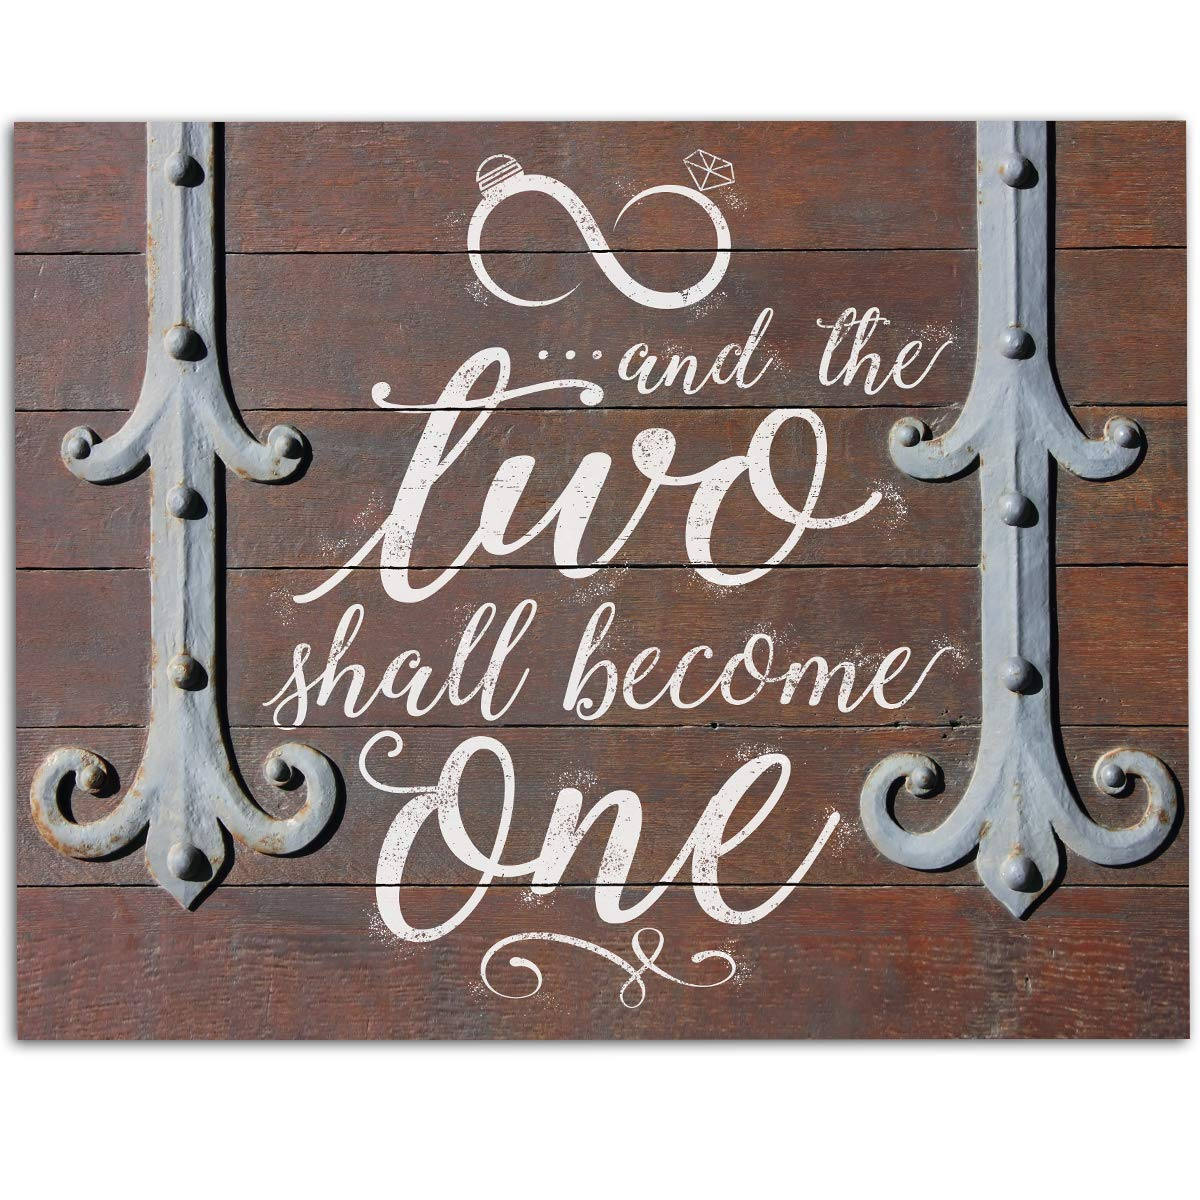 And The Two Shall Become One - 11x14 Unframed Art Print - Great Decor and Wedding Gift Under $15